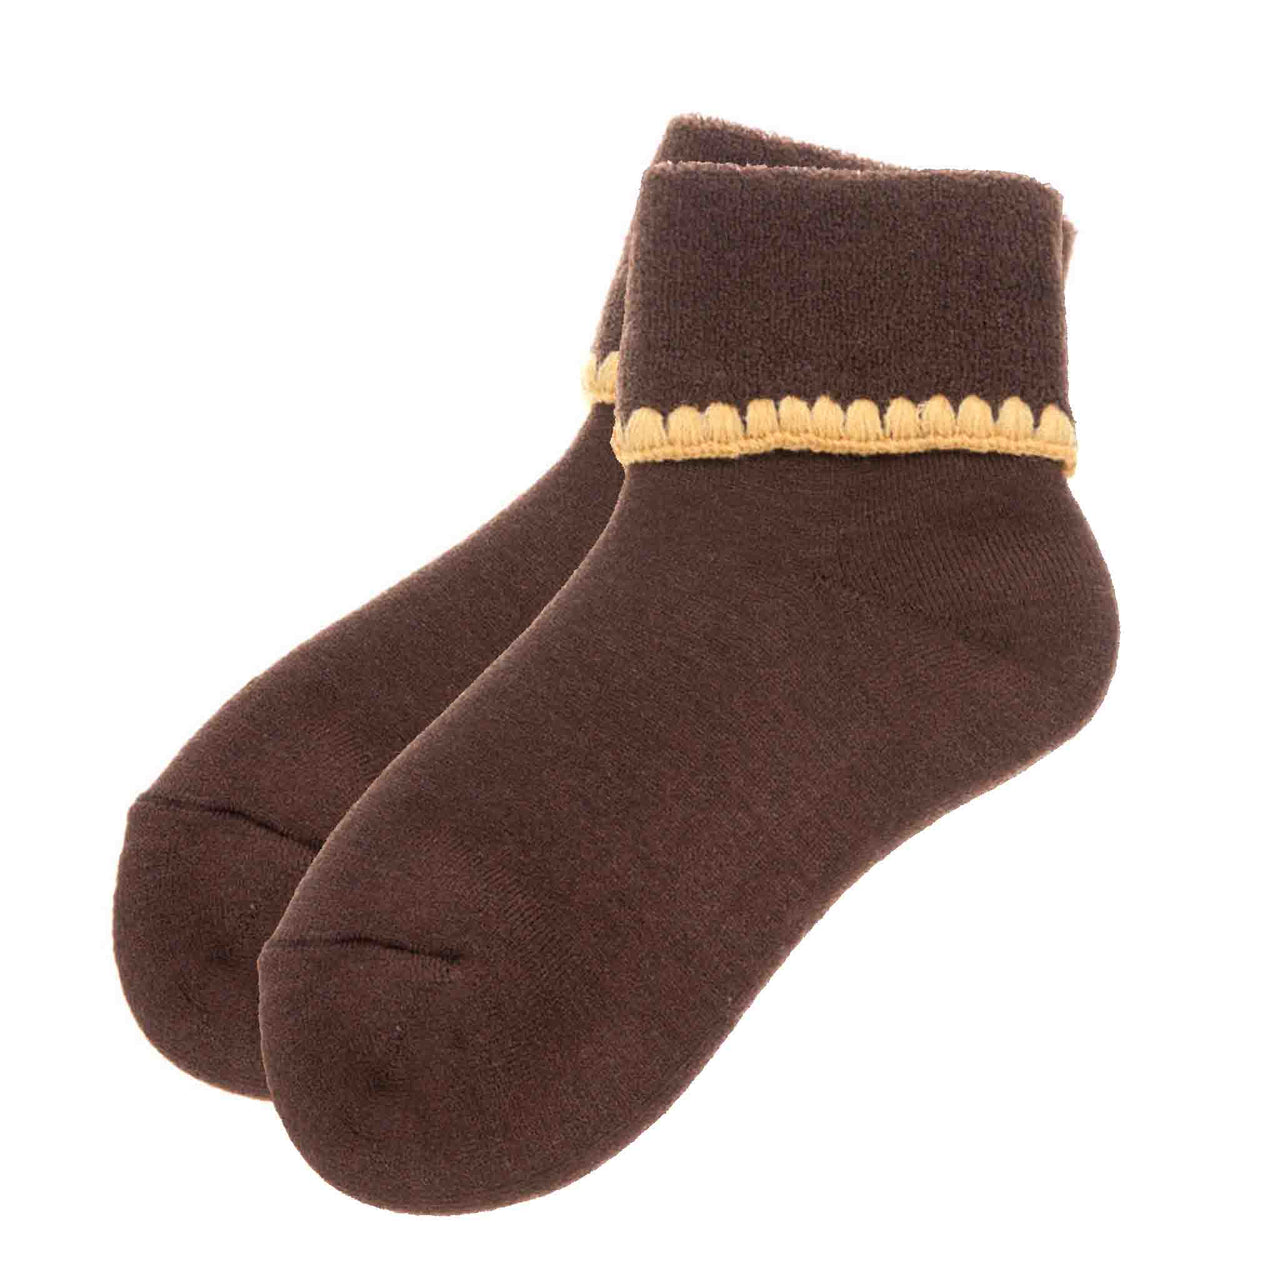 CHERRYSTONE® Cuff Socks NO GRIPS | Turn Cuff | Brown - CHERRYSTONE